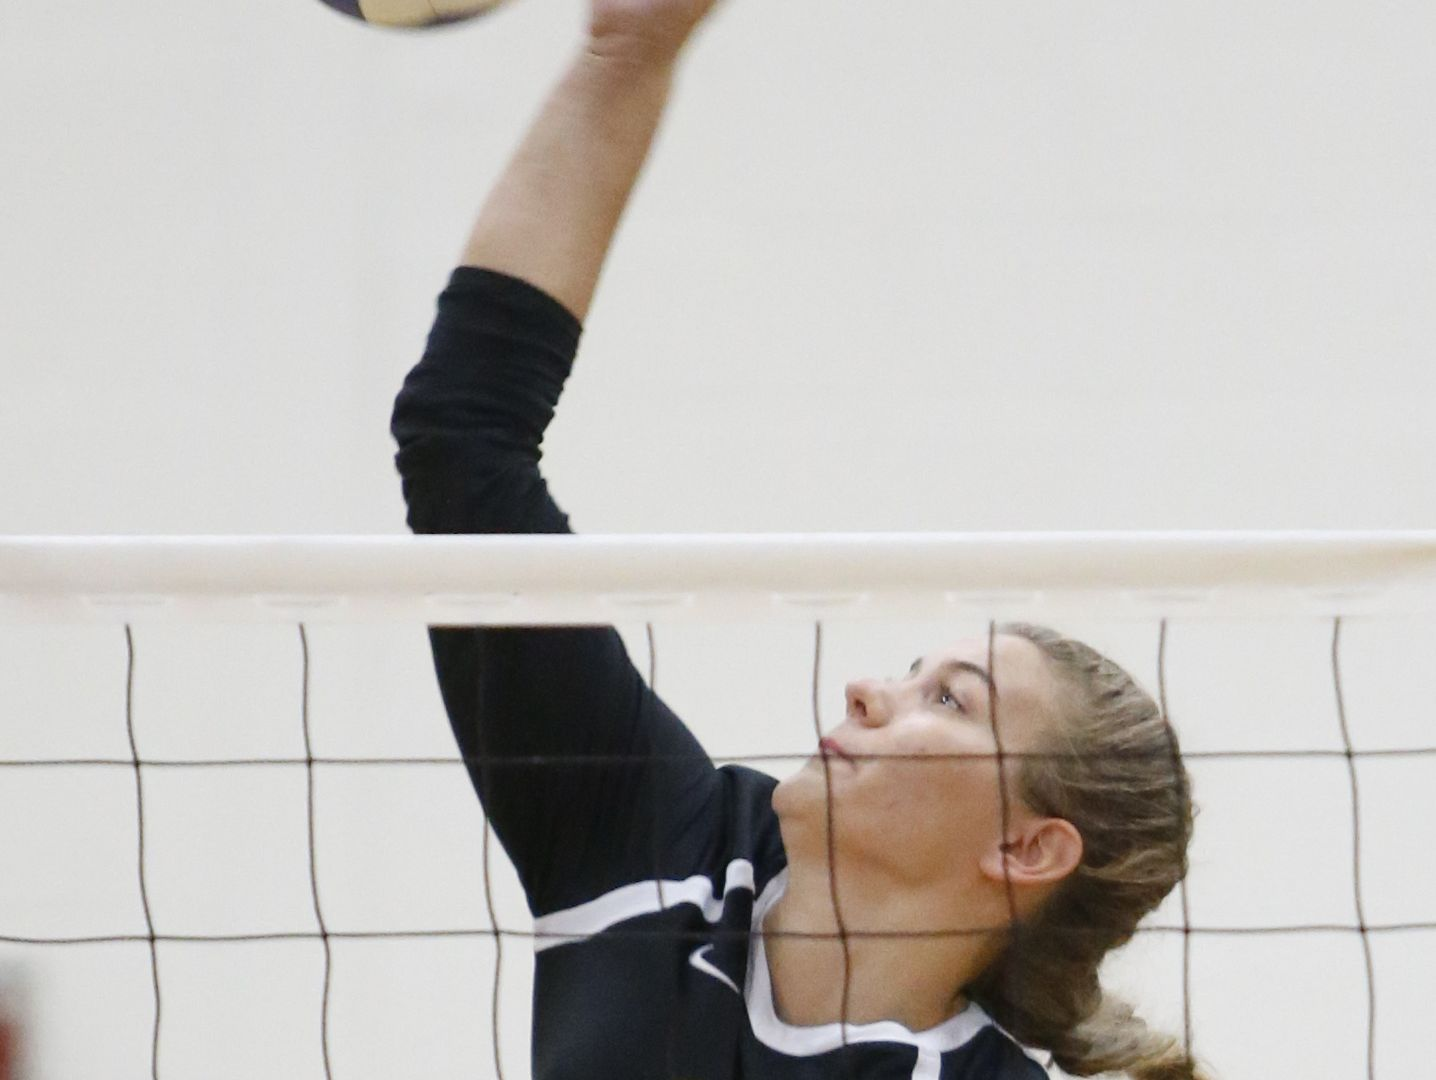 Padua's Emily Jarome was named Player of the Year and leads the All-State girls volleyball team, announced Tuesday by the Delaware Interscholastic Volleyball Coaches Association.